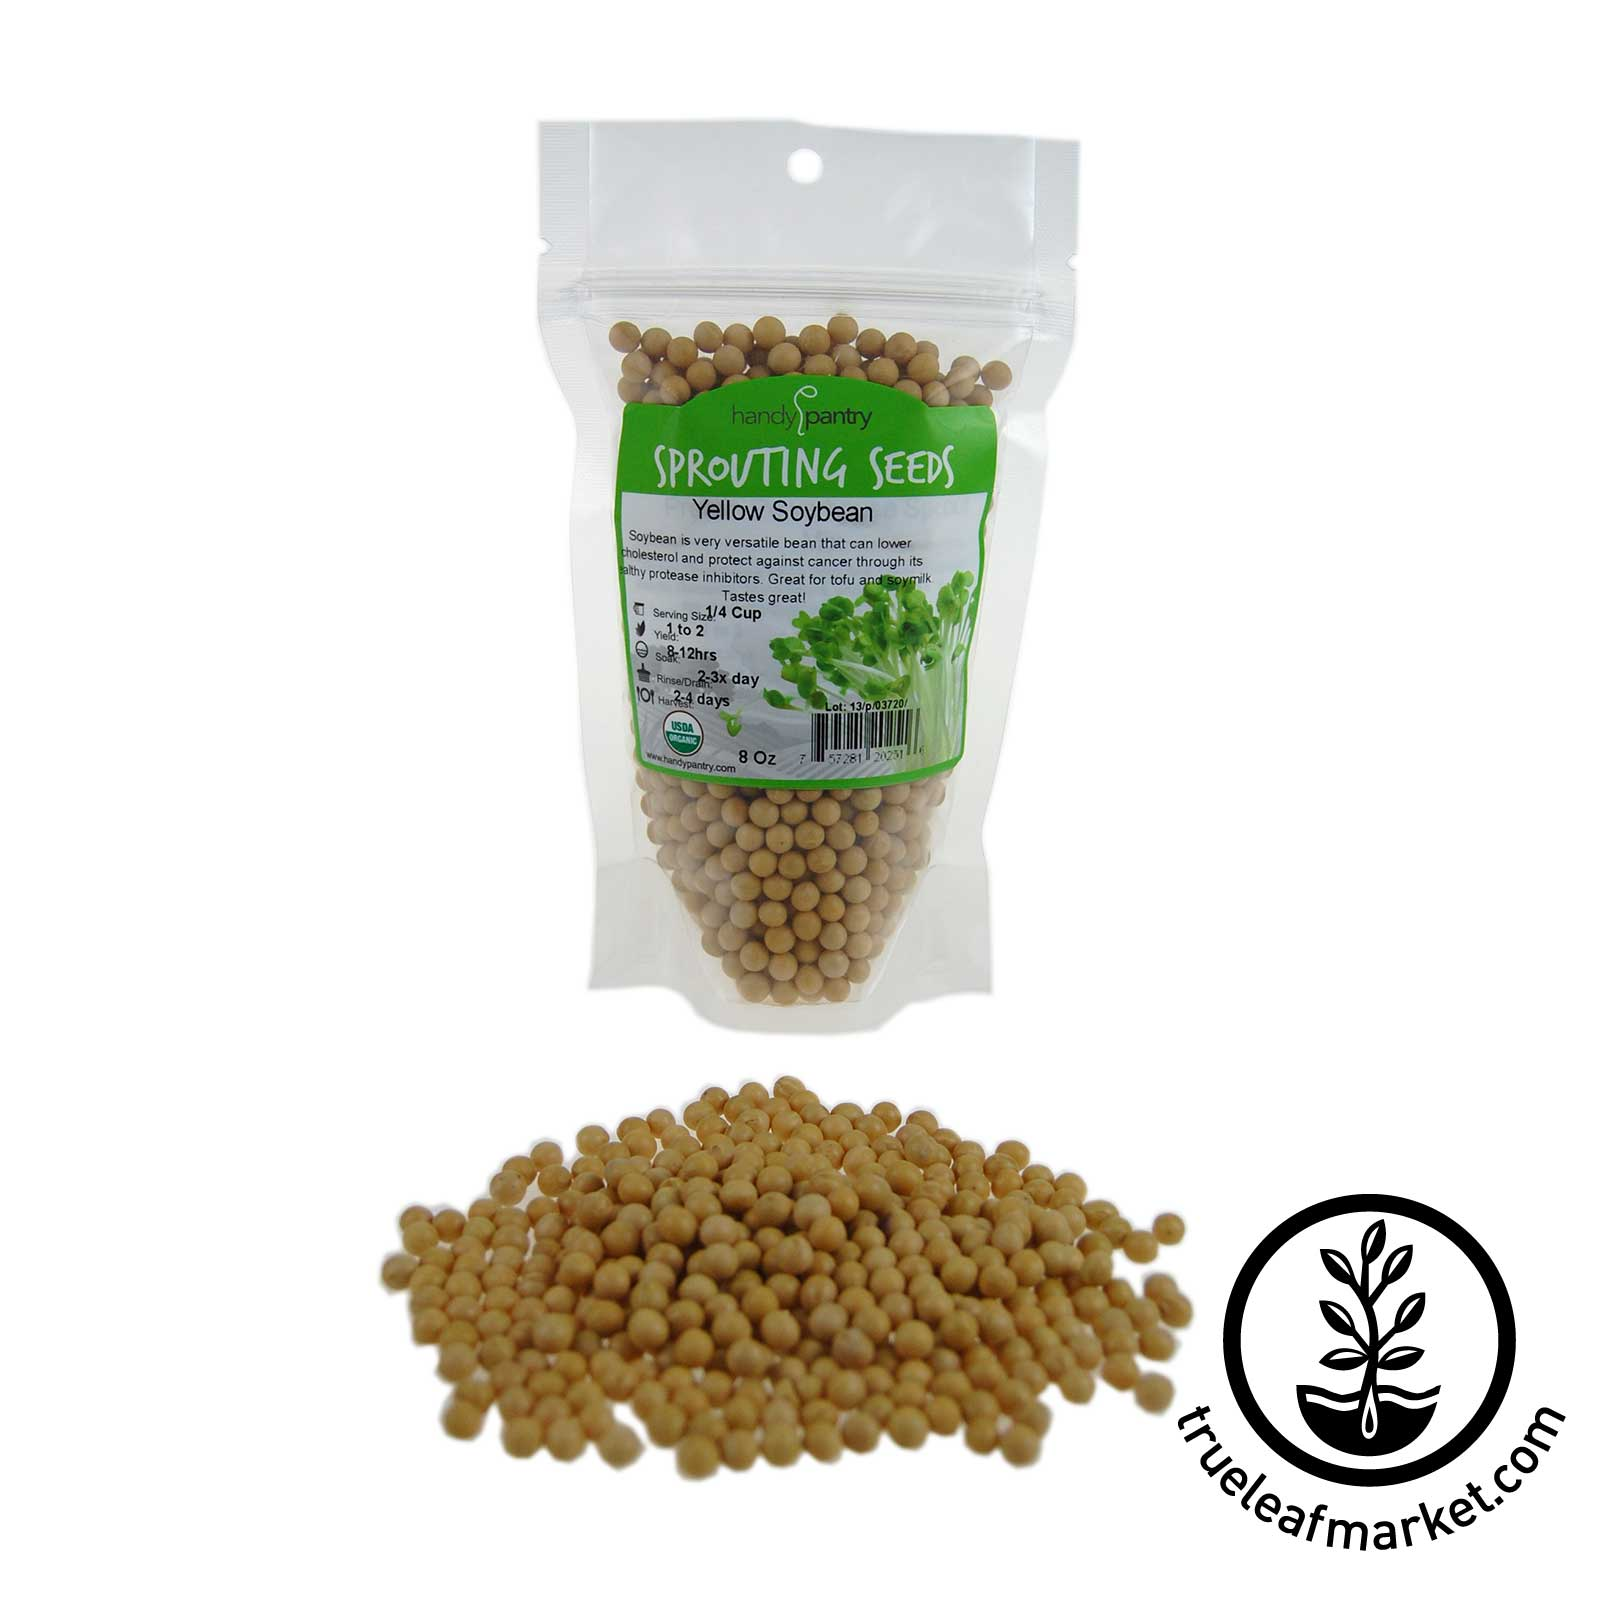 8 oz - Organic Yellow Soybeans